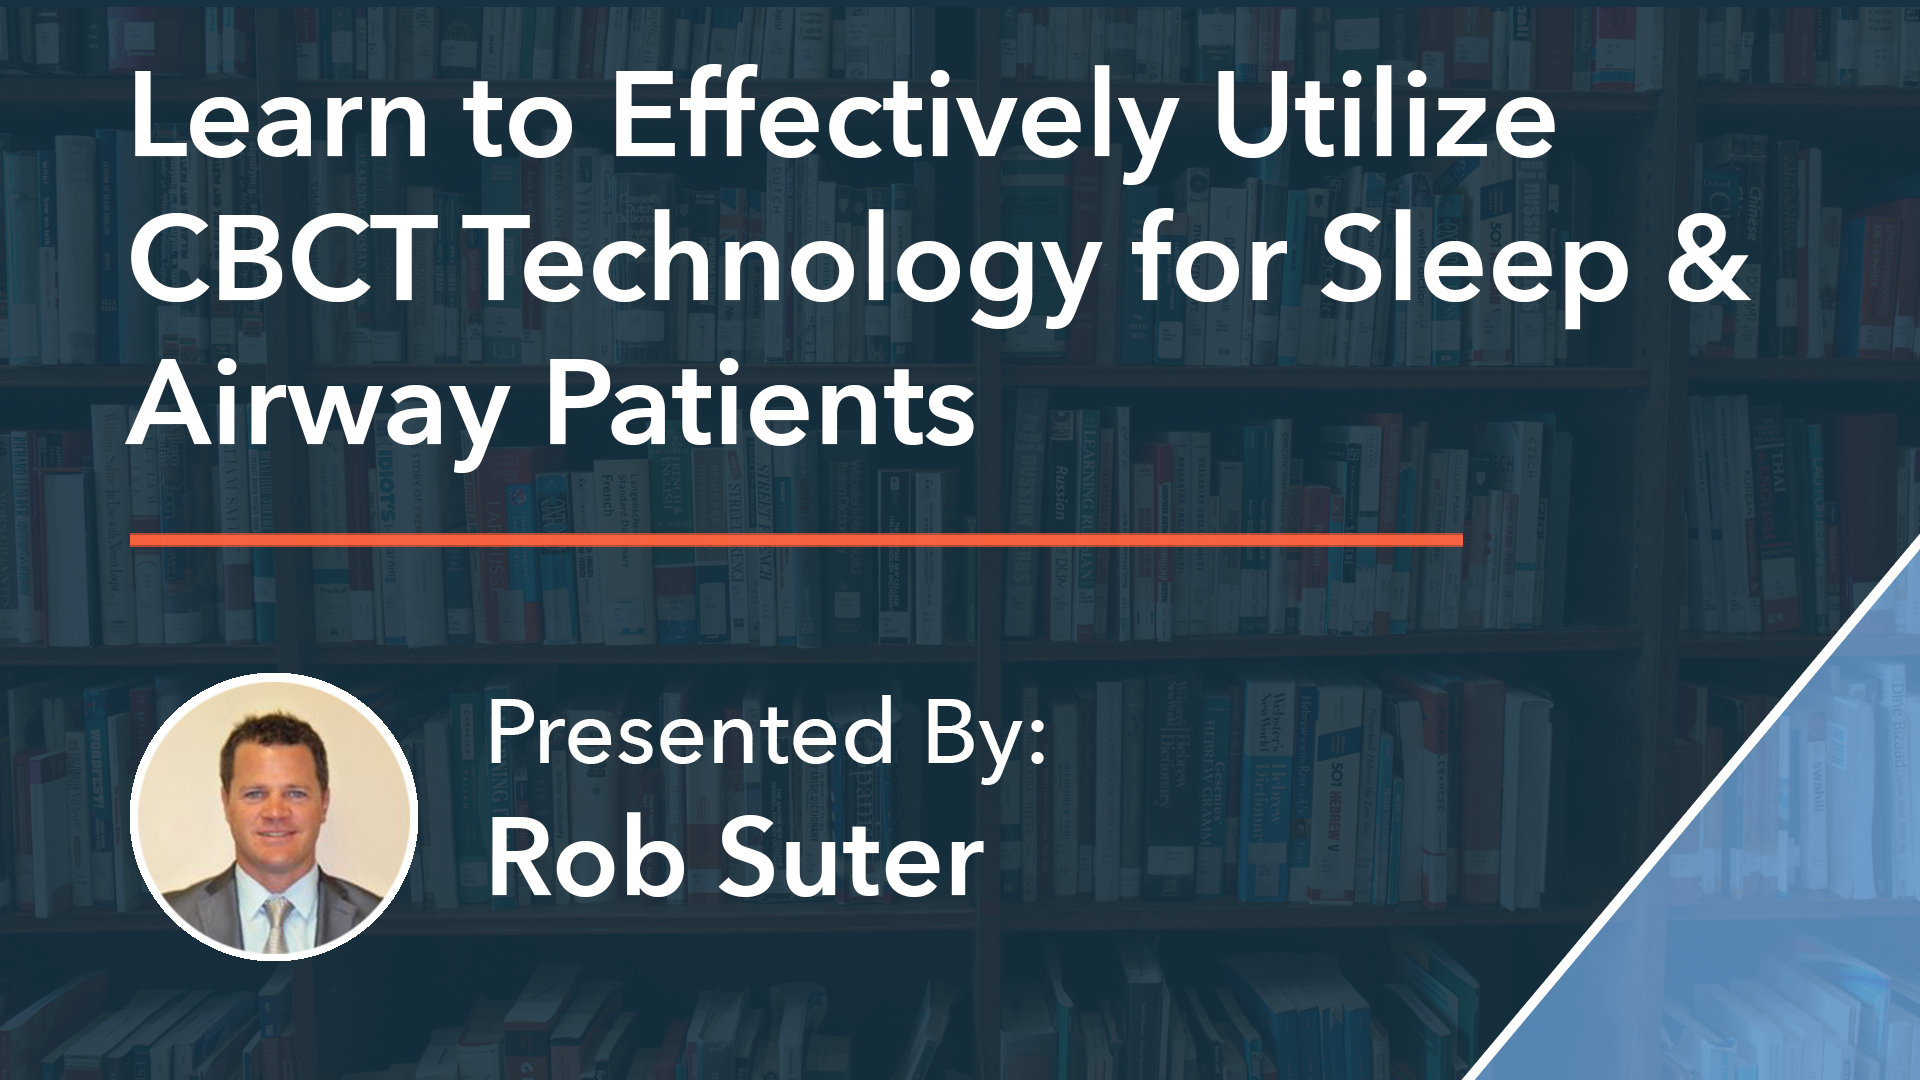 Learn to Effectively Utilize CBCT Technology for Sleep & Airway Patients Rob Suter